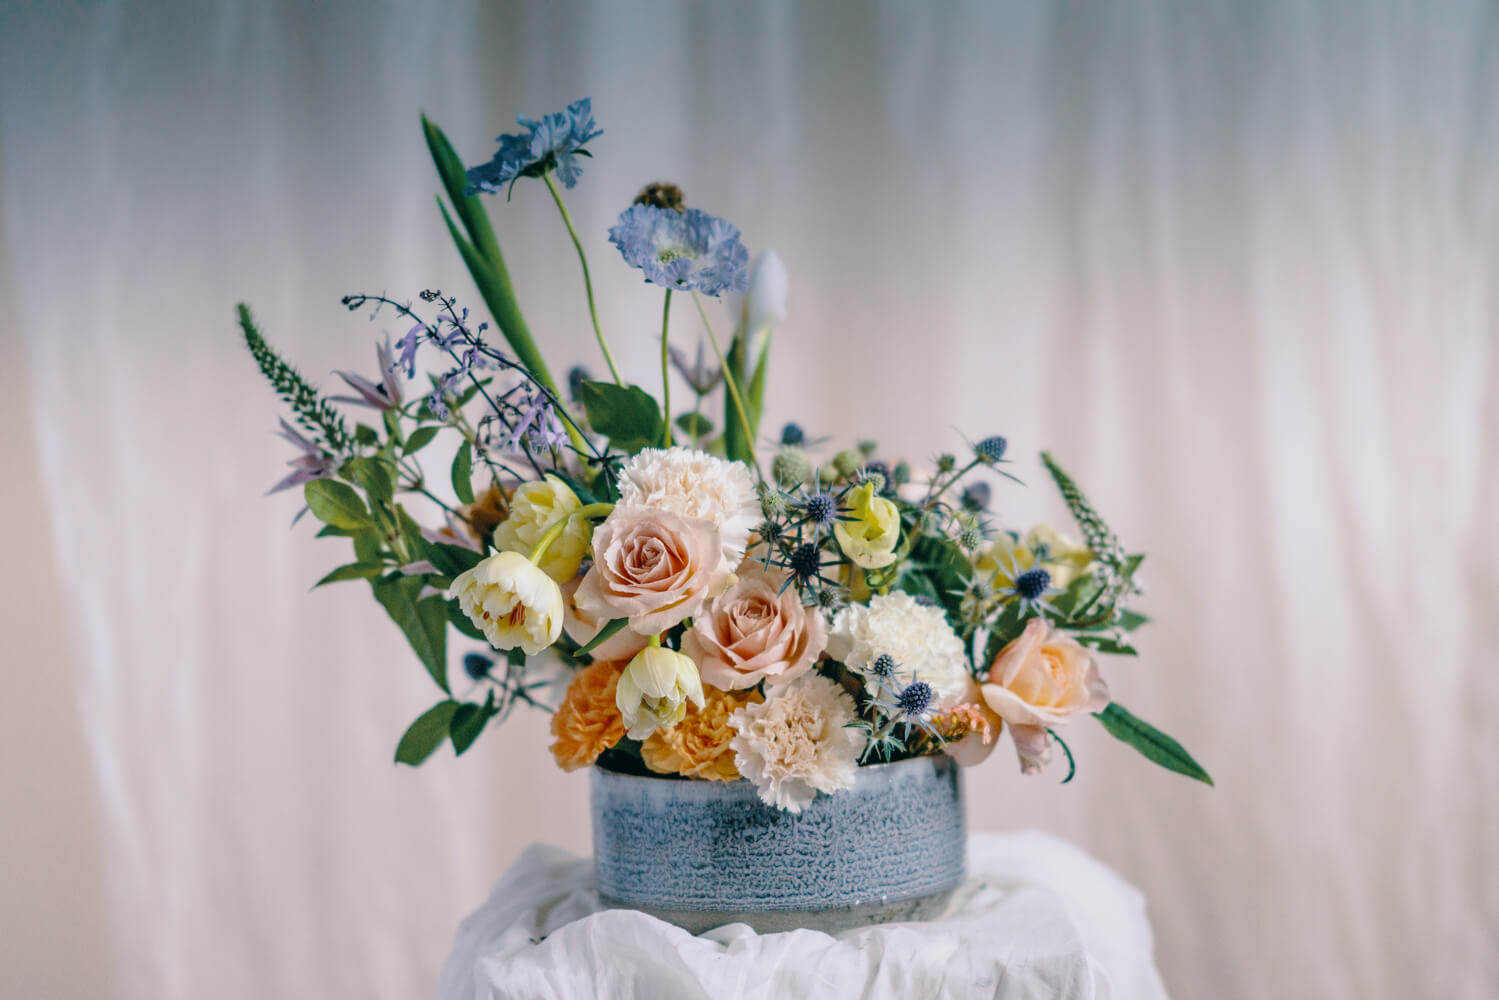 Wedding Flowers Centrepiece from London Florist For Weddings